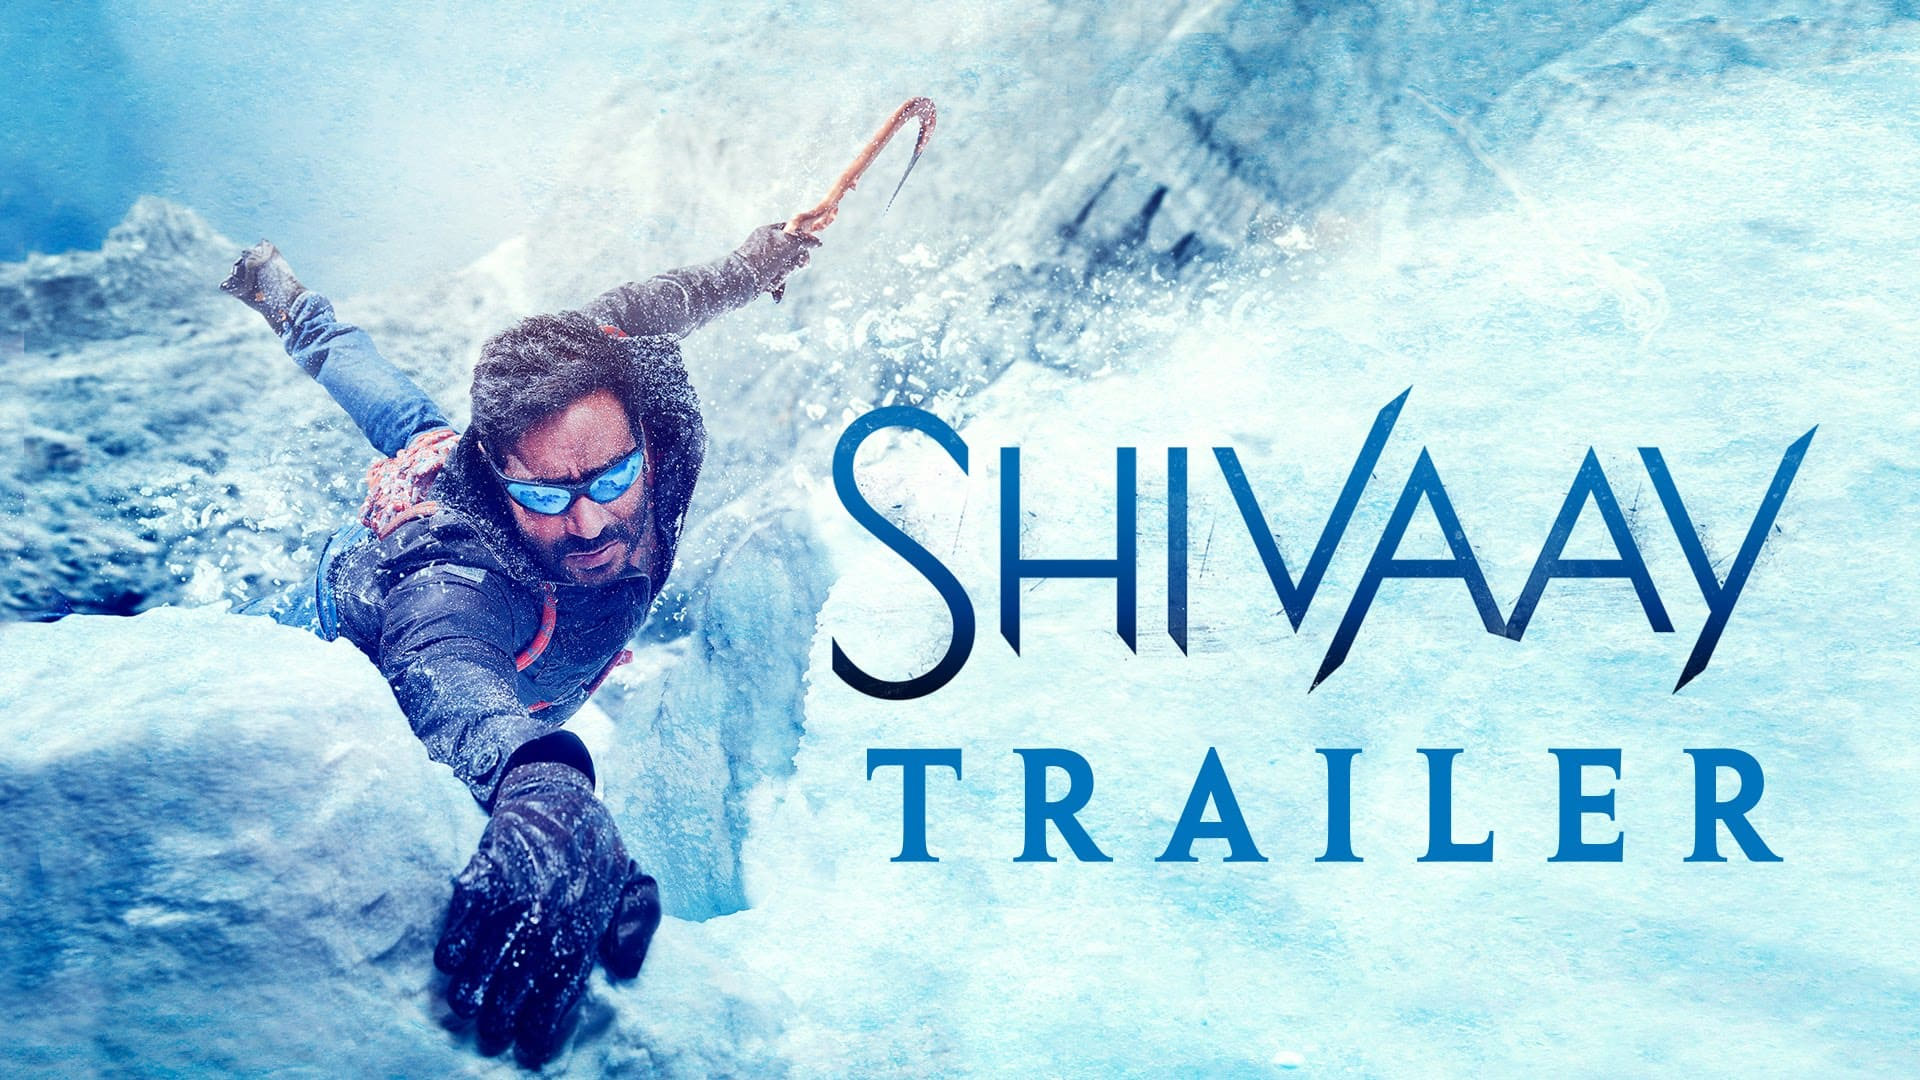 At almost 4 Minutes, Shivaay's Breathtaking Trailer Will Transport You To A Different World!